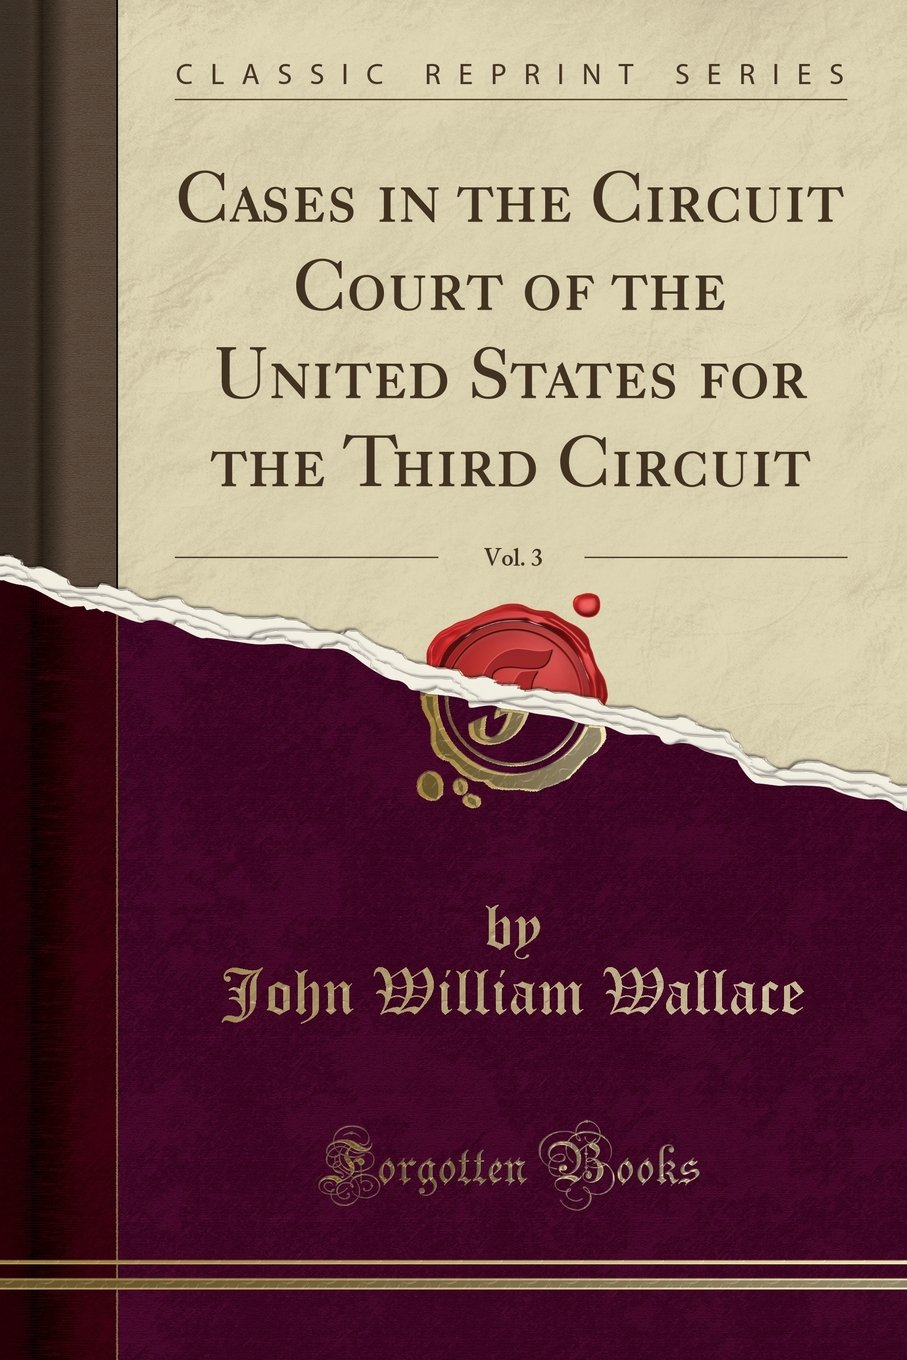 Cases in the Circuit Court of the United States for the Third Circuit, Vol. 3 (Classic Reprint) PDF